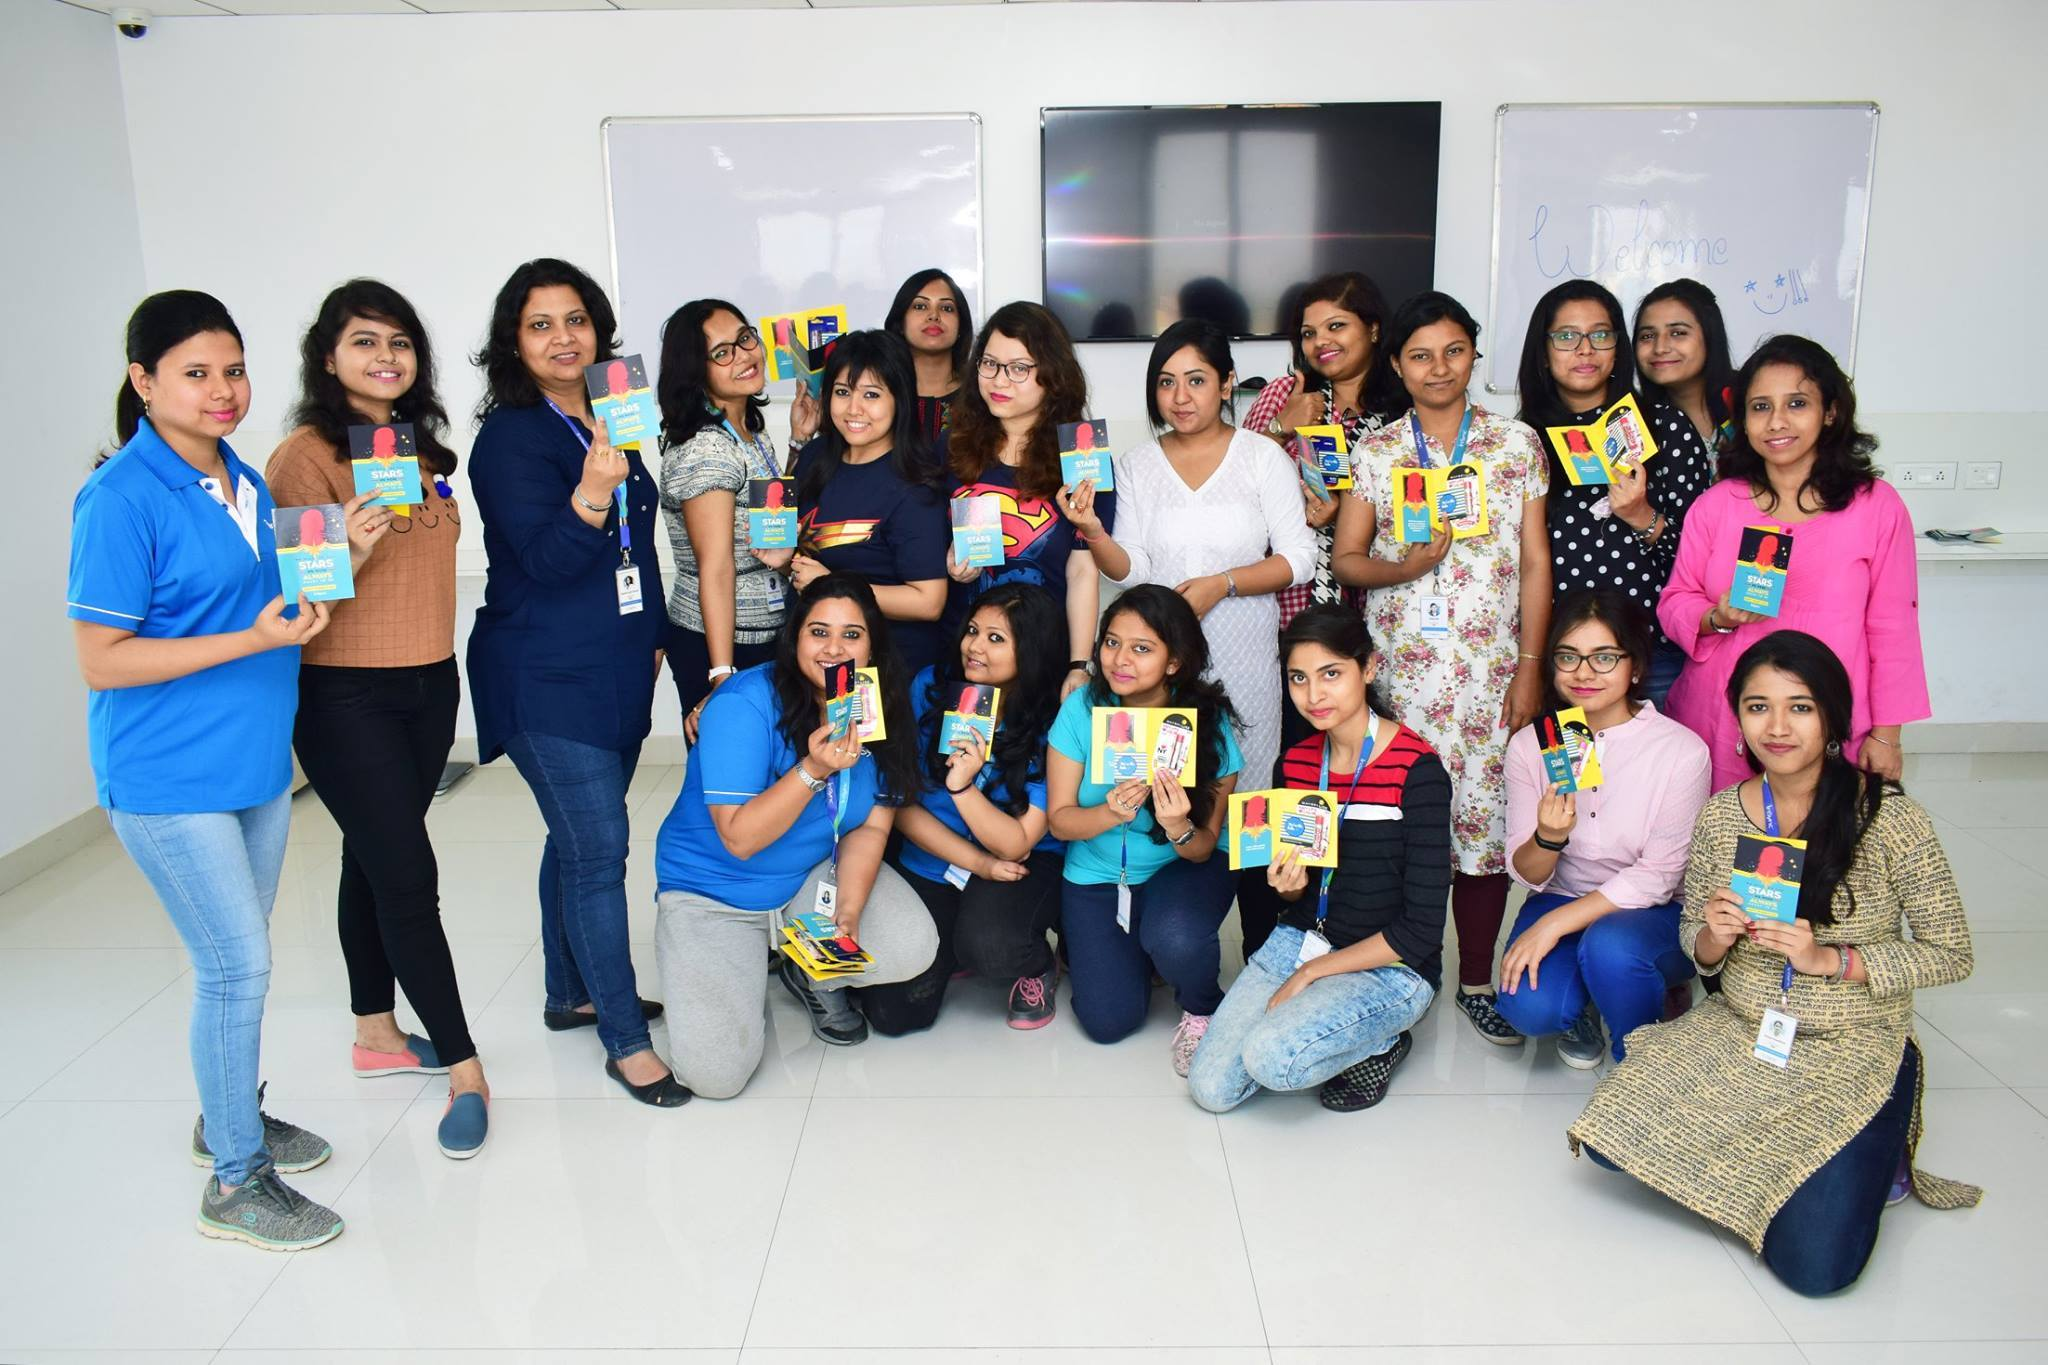 womens-day-2019-insync-appseconnect